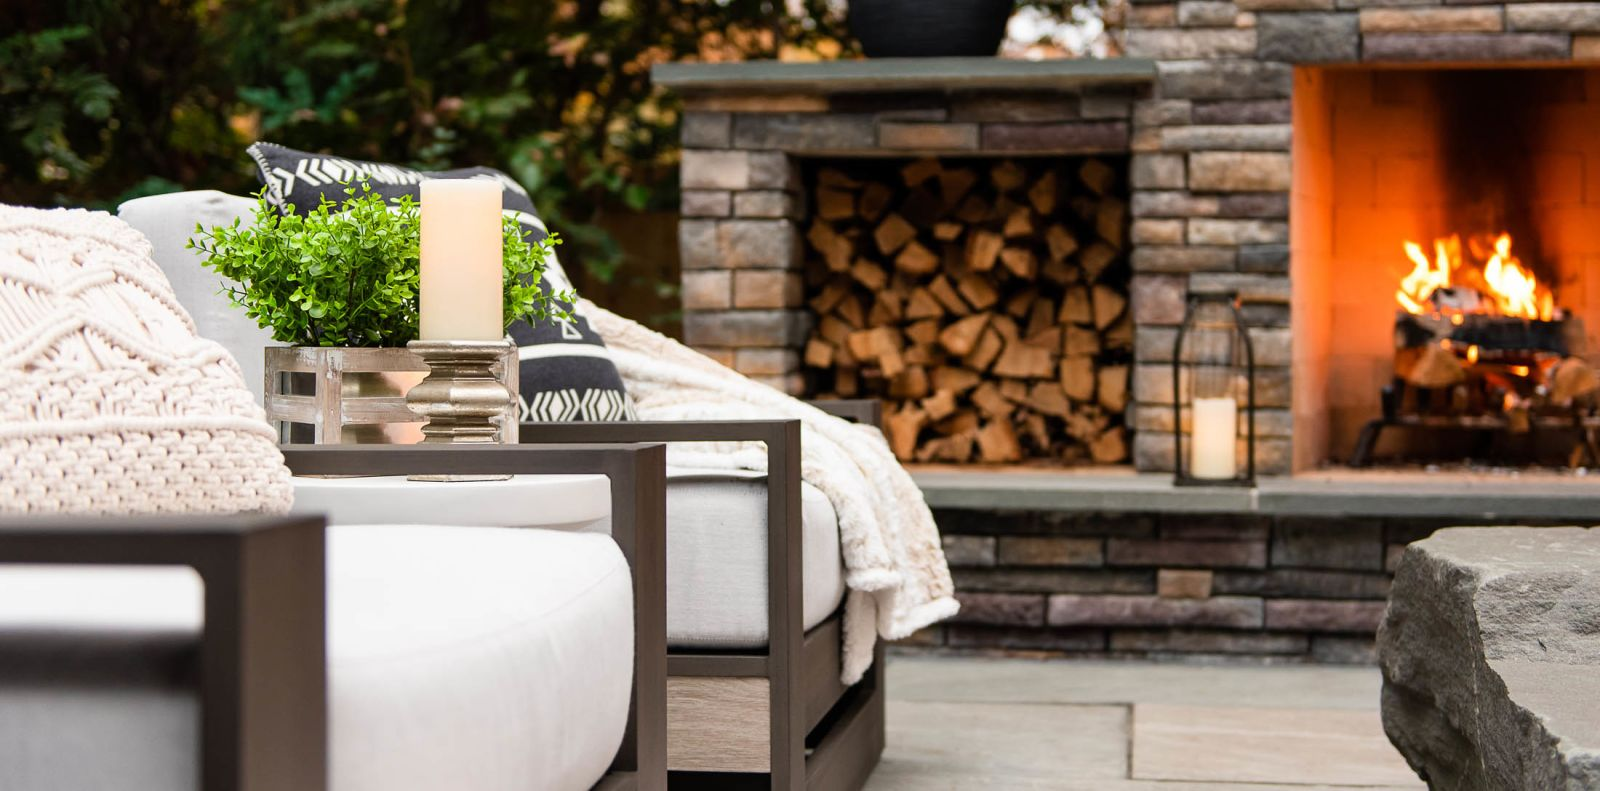 hardscaped backyard with fire place and stone